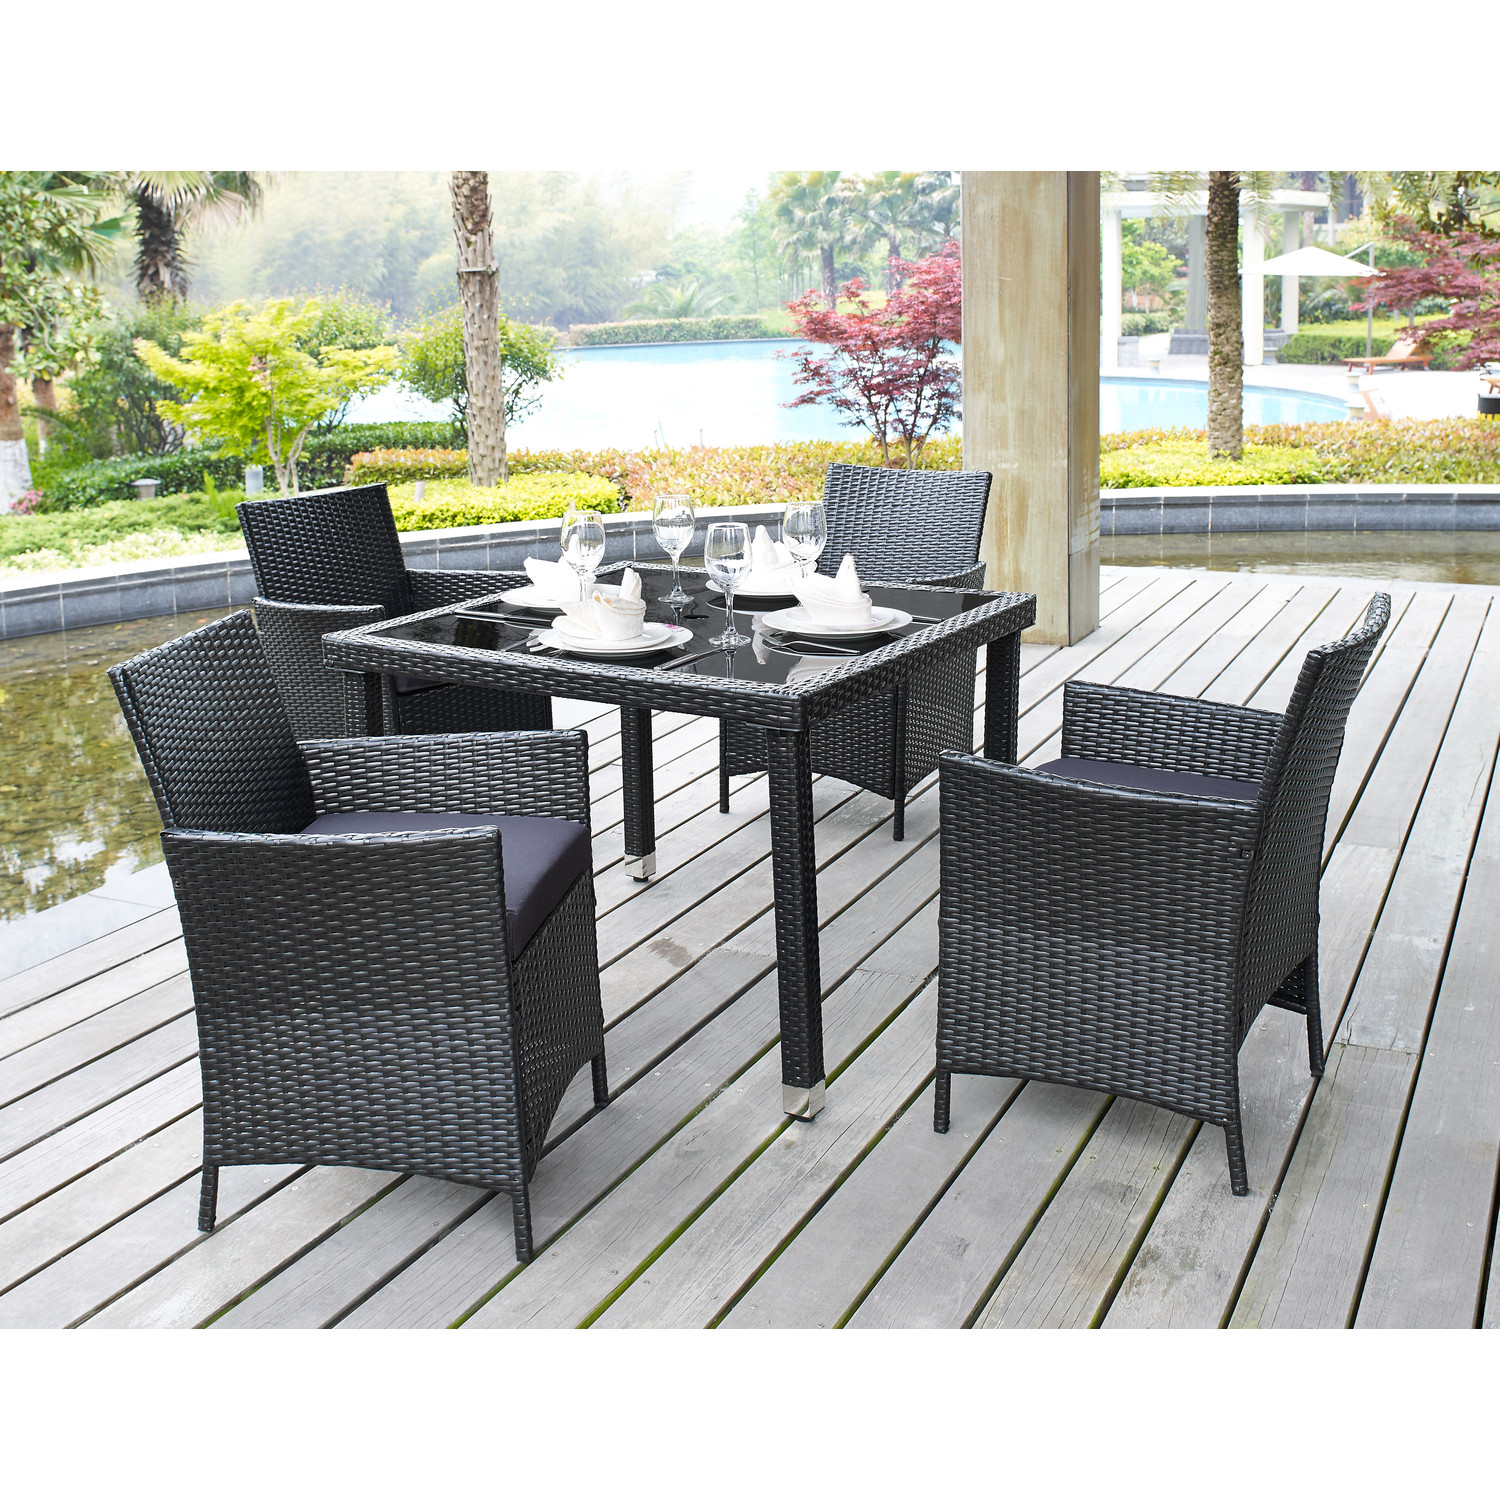 Places to go for affordable modern outdoor furniture for Outdoor furniture modern